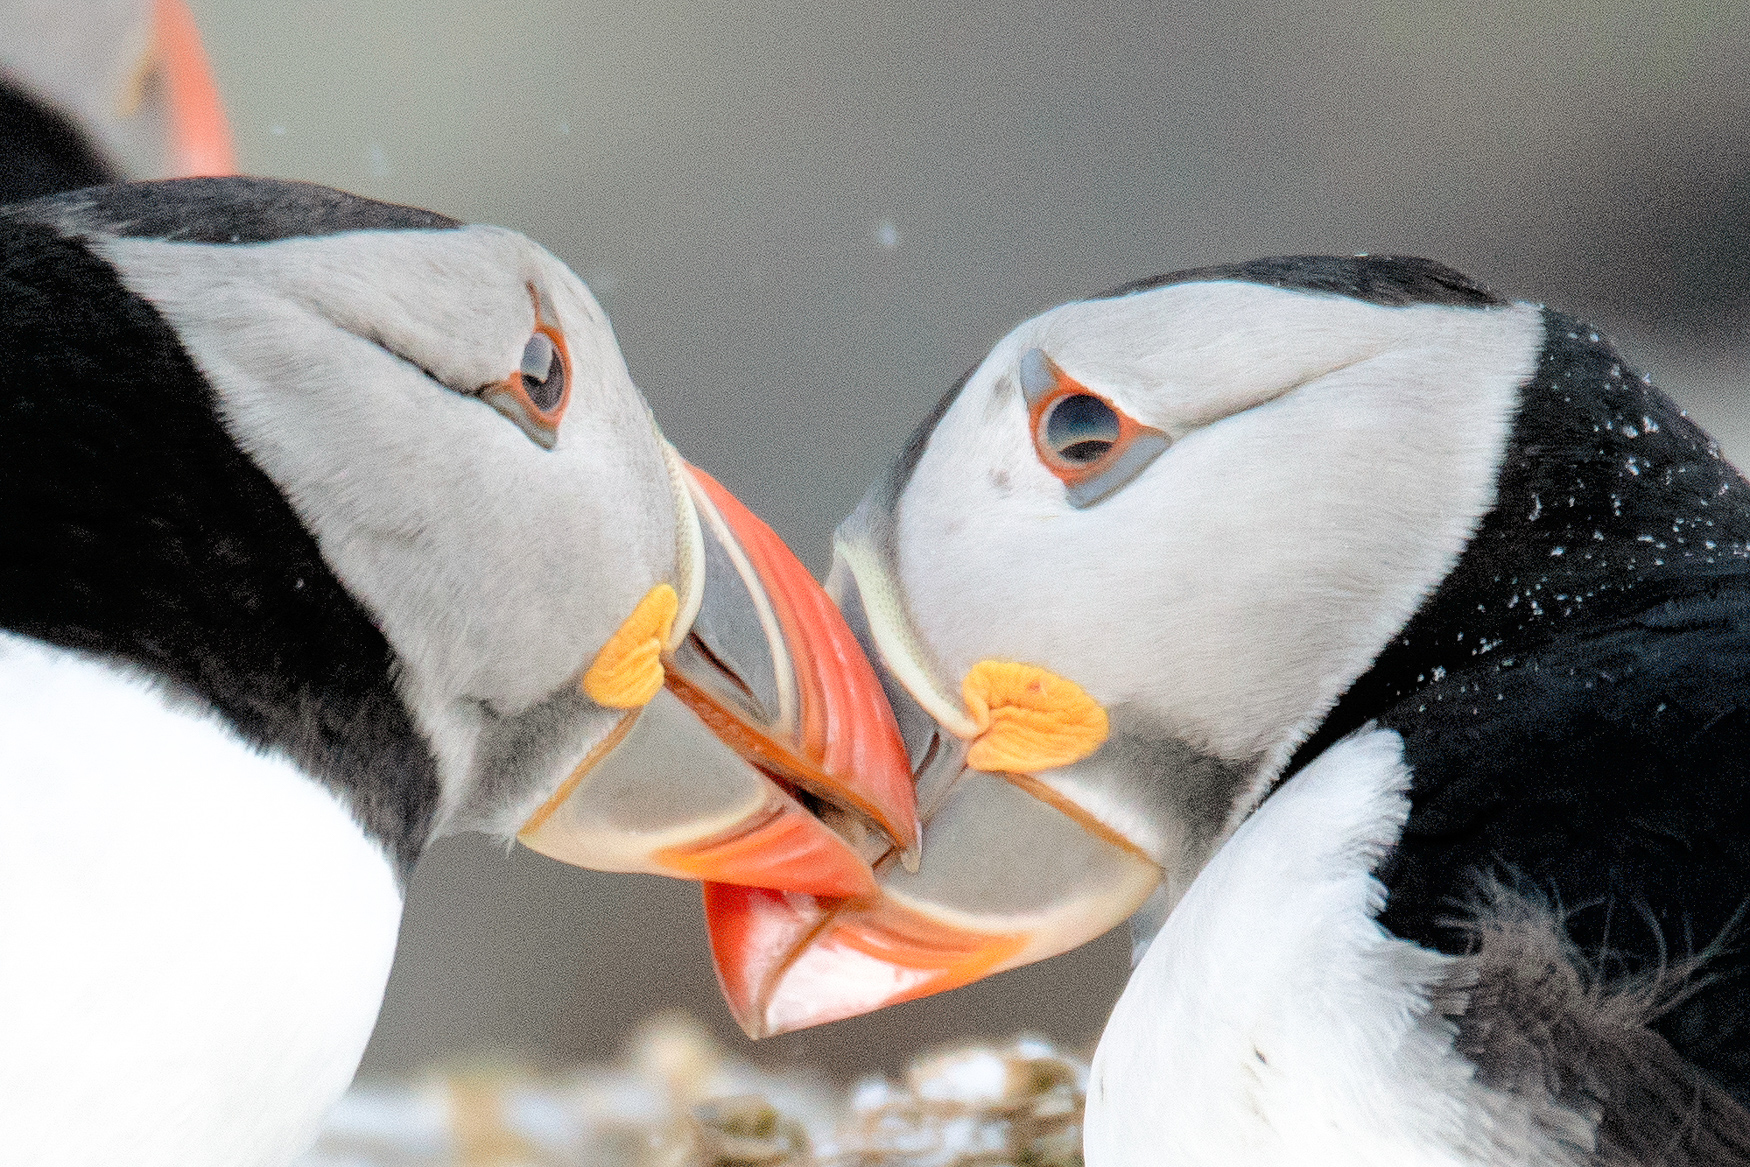 Sparing Puffins, Norway